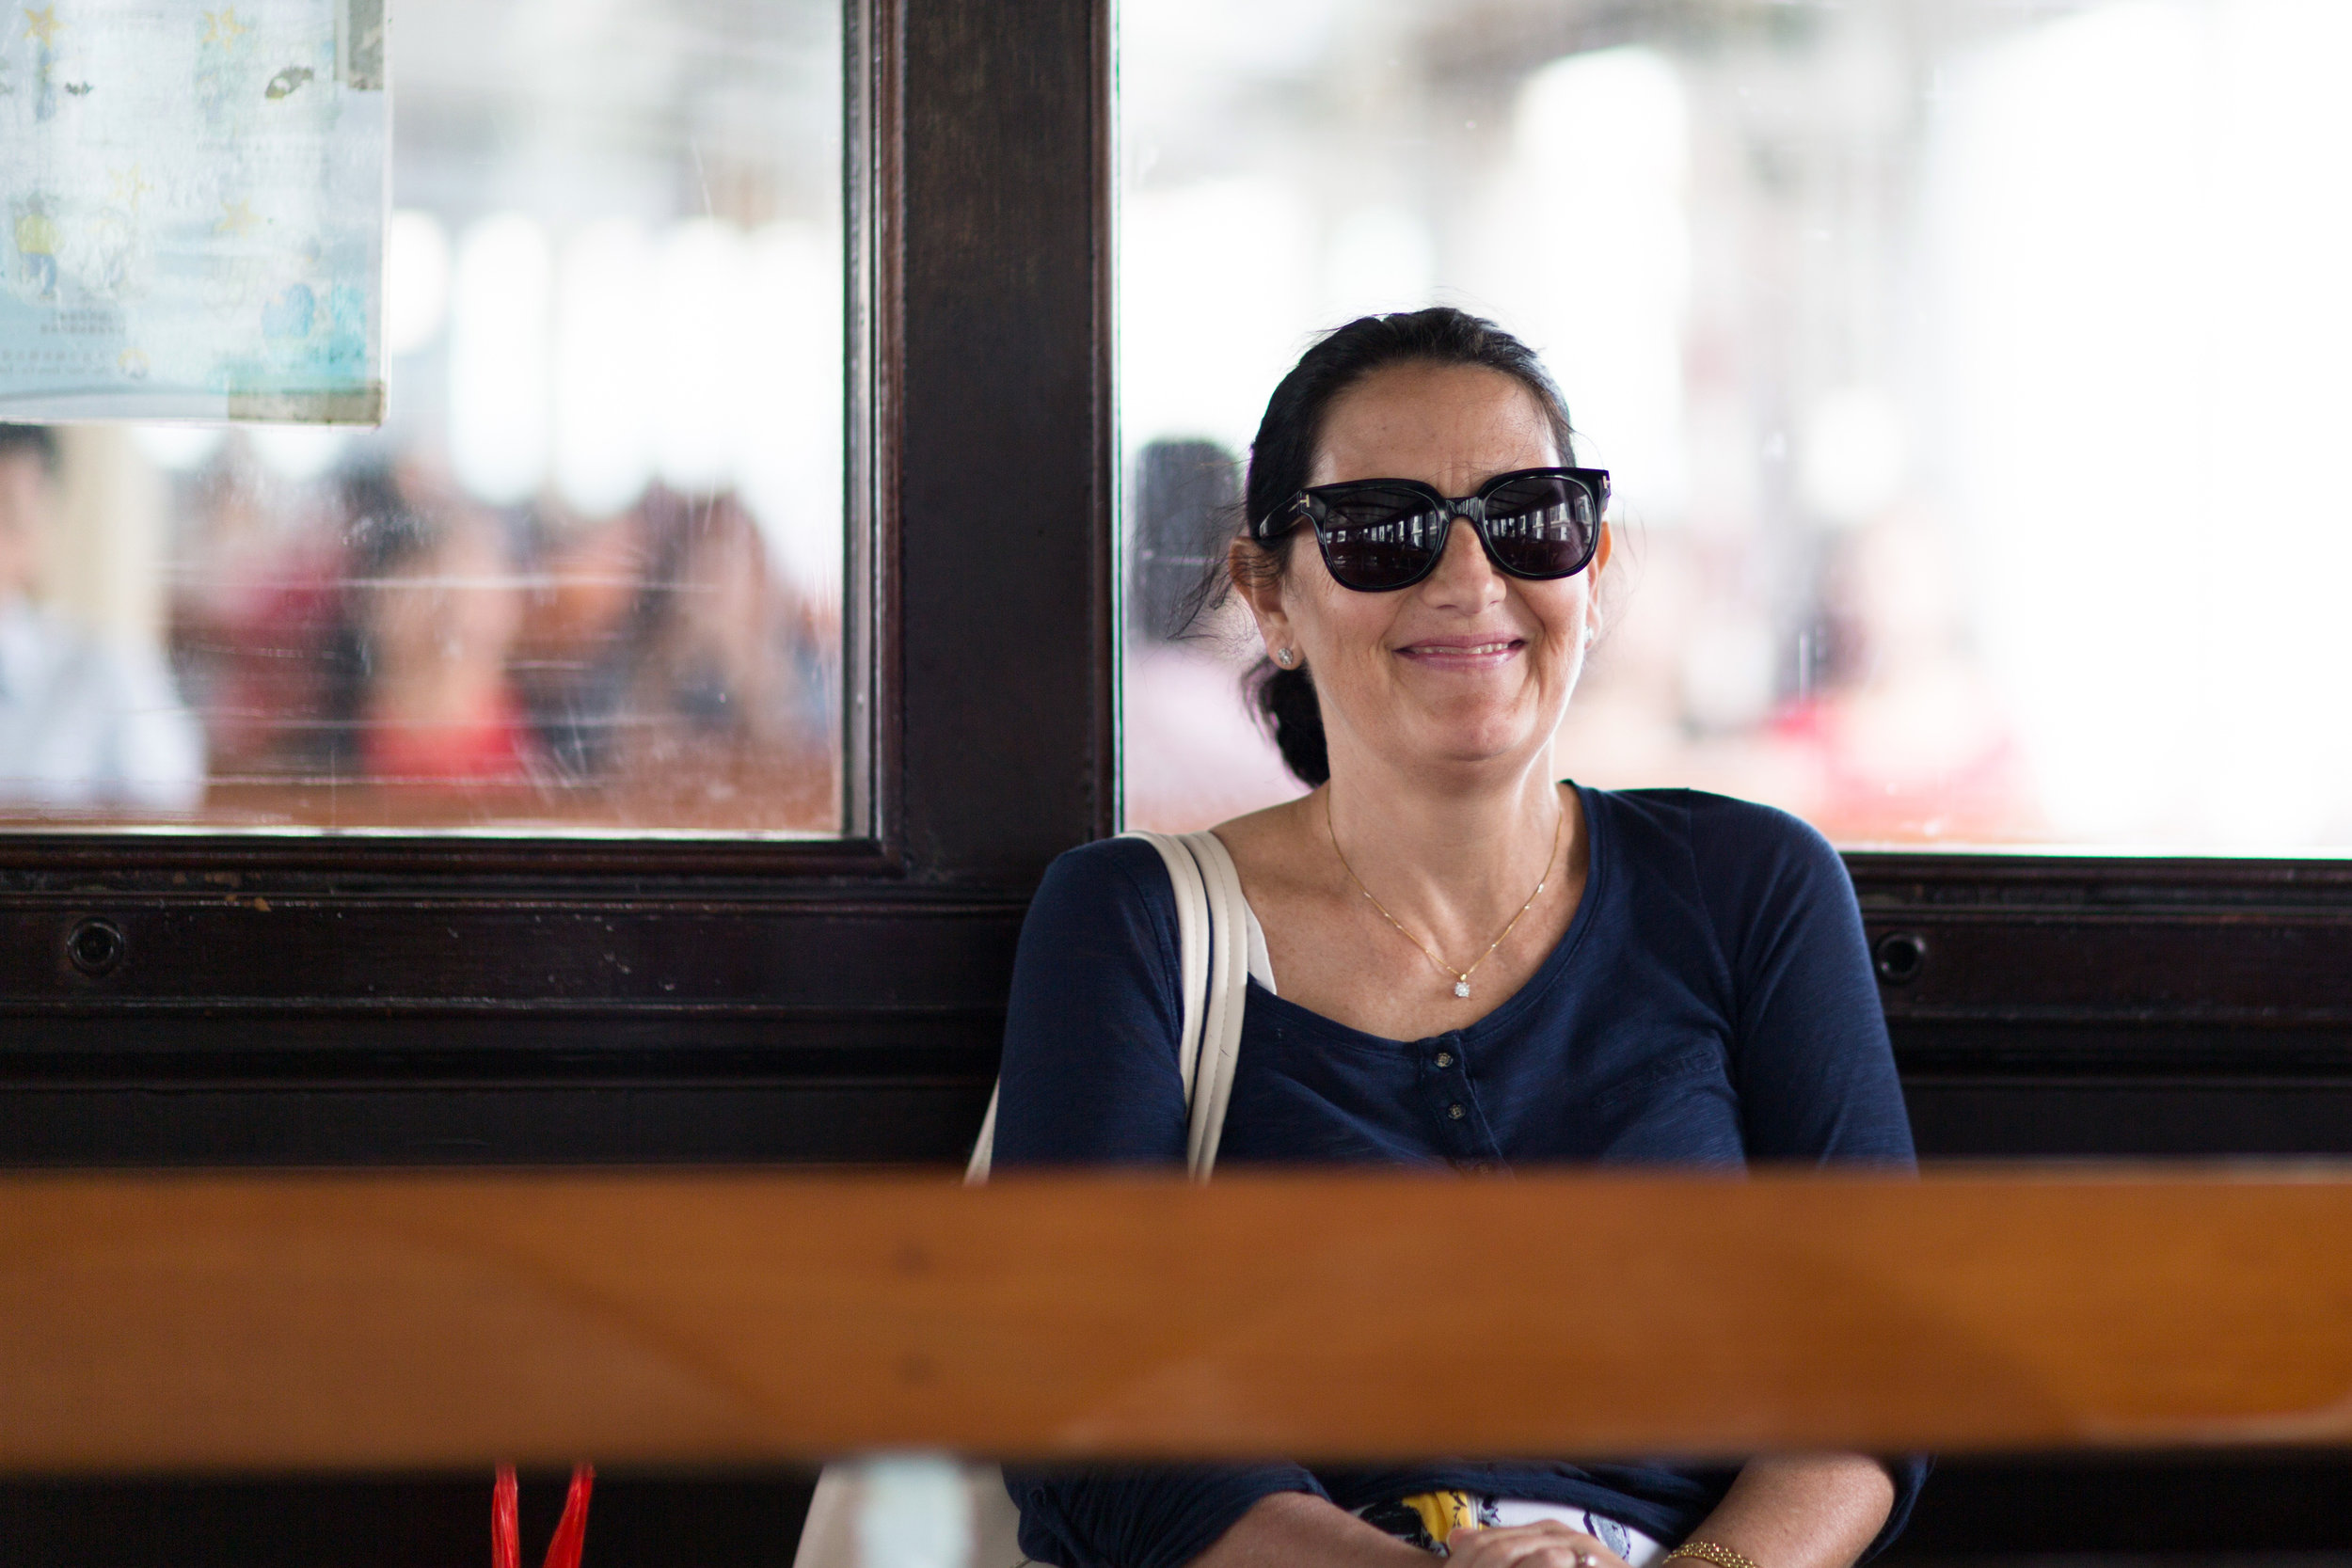 A woman on board the Star Ferry in Hong Kong